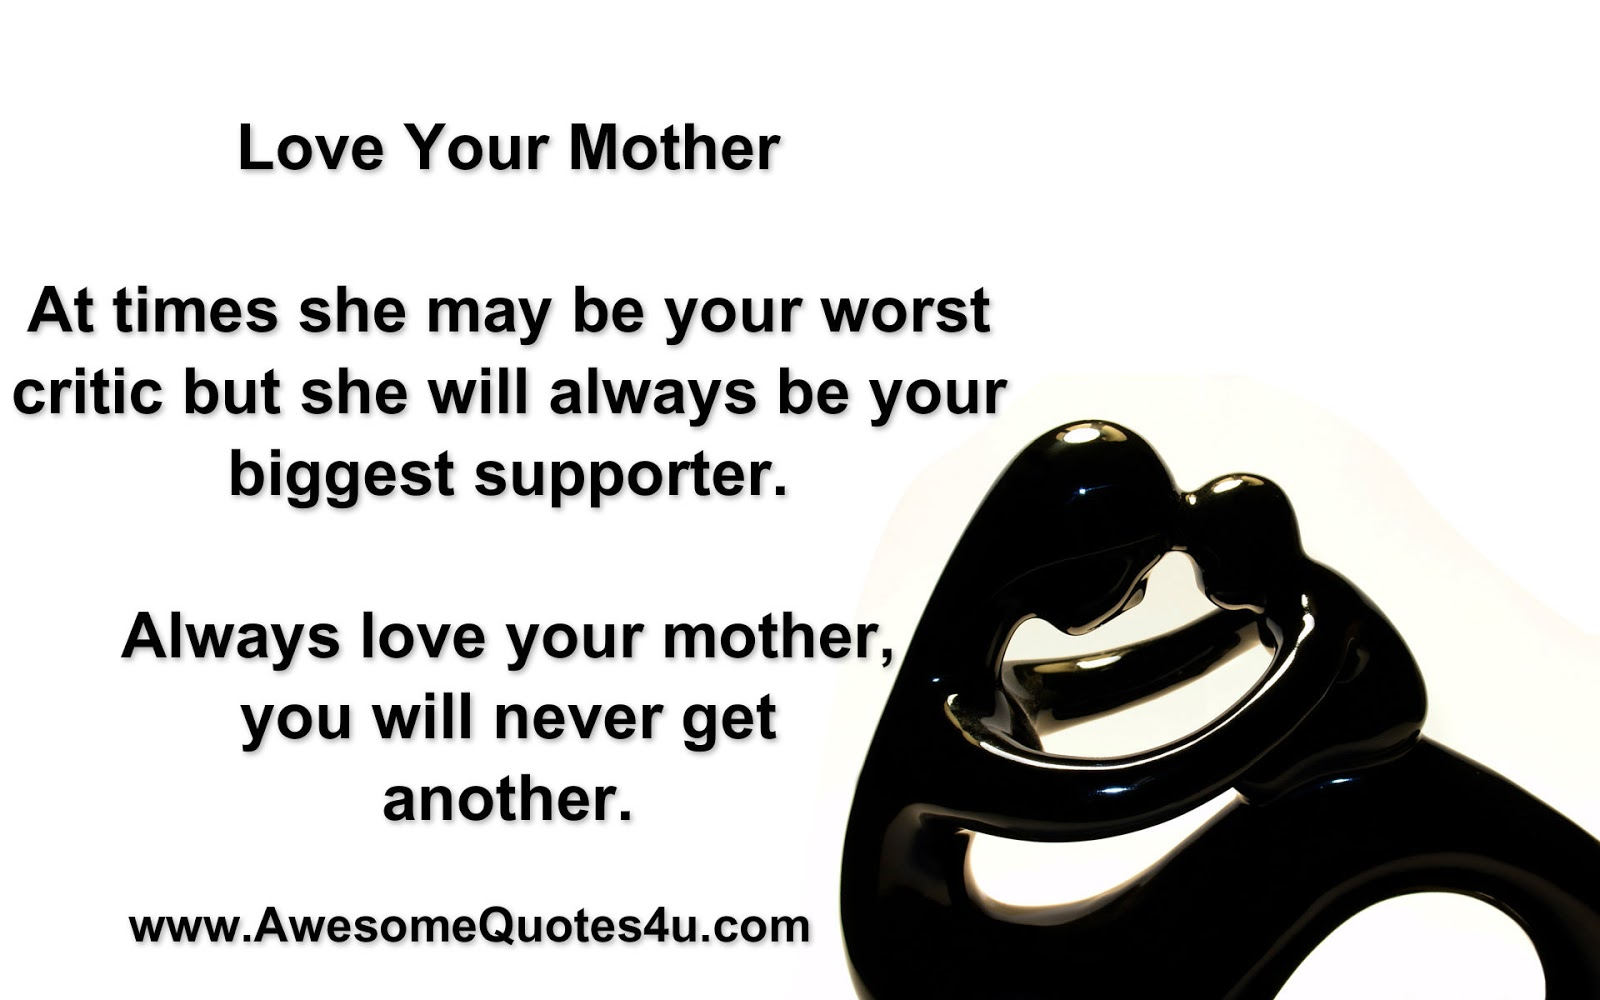 Quotes About Love Your Mother